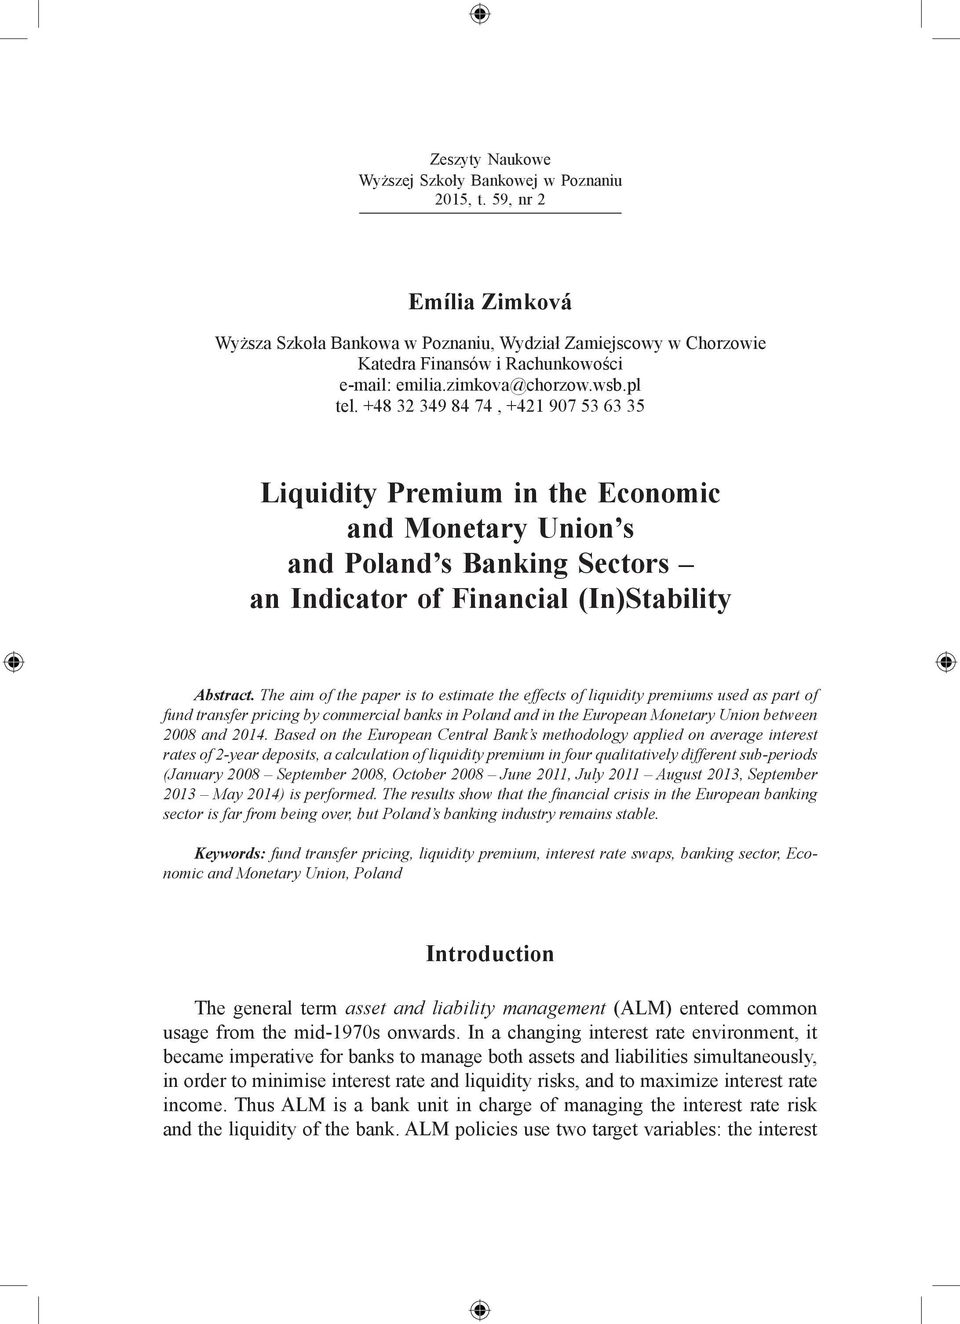 The aim of the paper is to estimate the effects of liquidity premiums used as part of fund transfer pricing by commercial banks in Poland and in the European Monetary Union between 2008 and 2014.